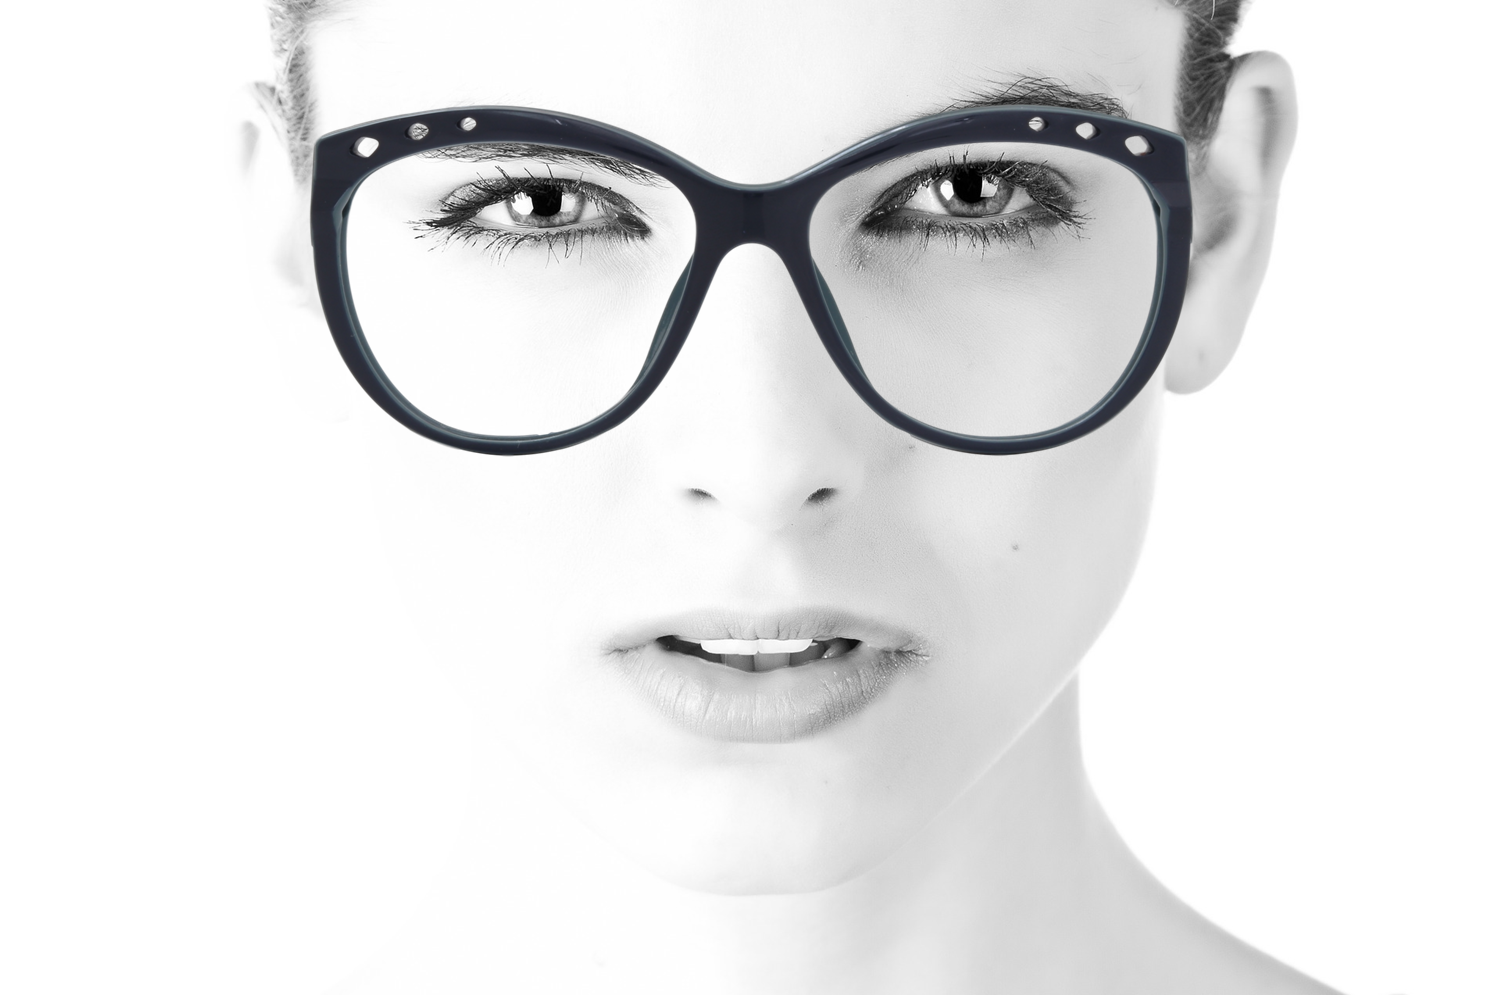 Peep Eyewear Virtual Try On, Downloadable images, Examples of frames being worn (5).png